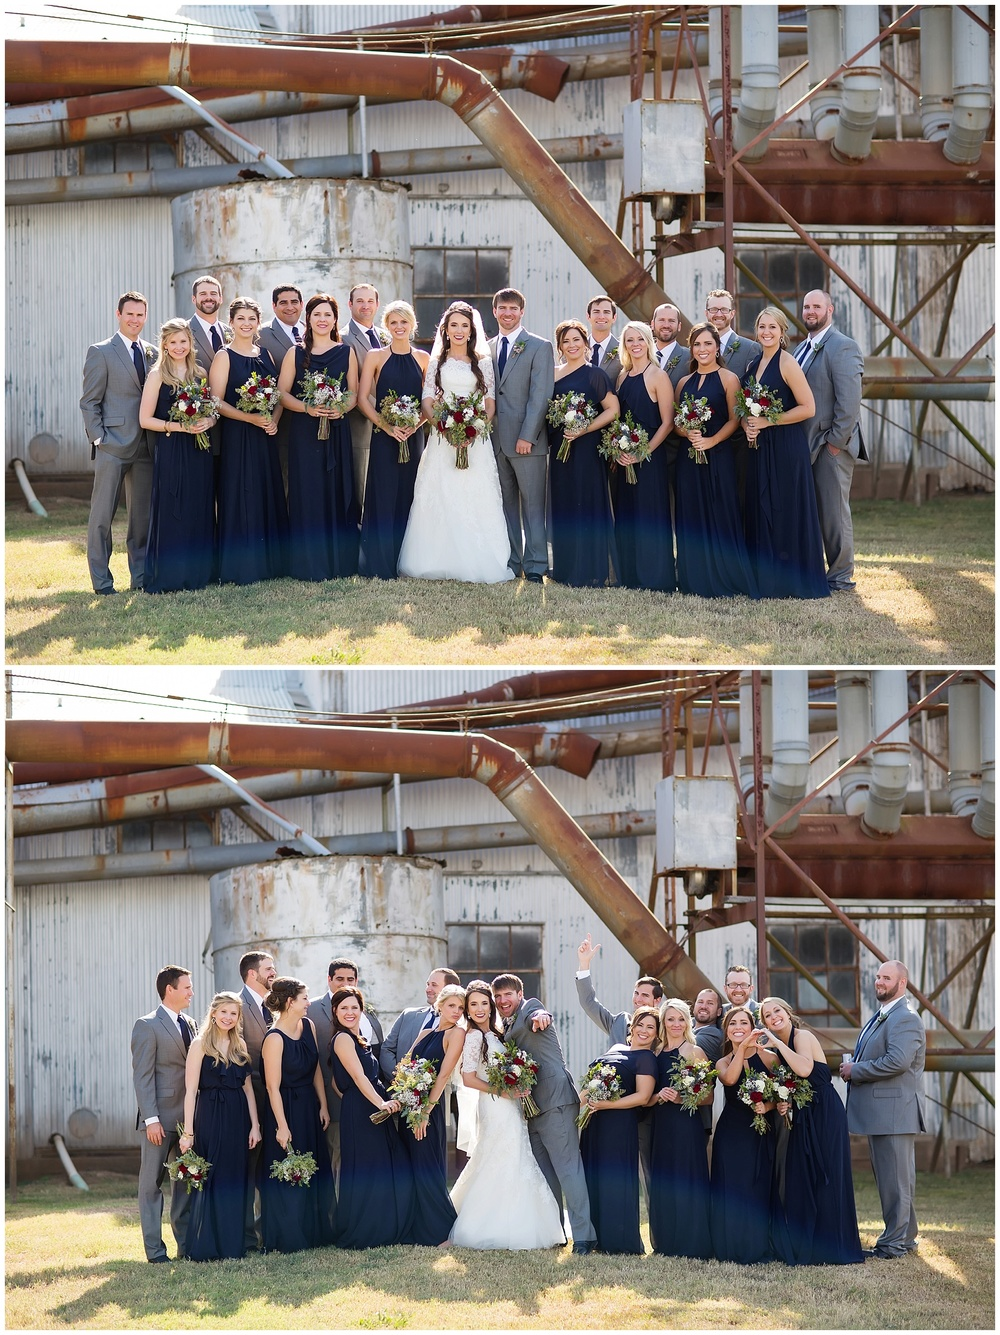 Kinler_DixieGin_Shreveport_Wedding_38.jpg